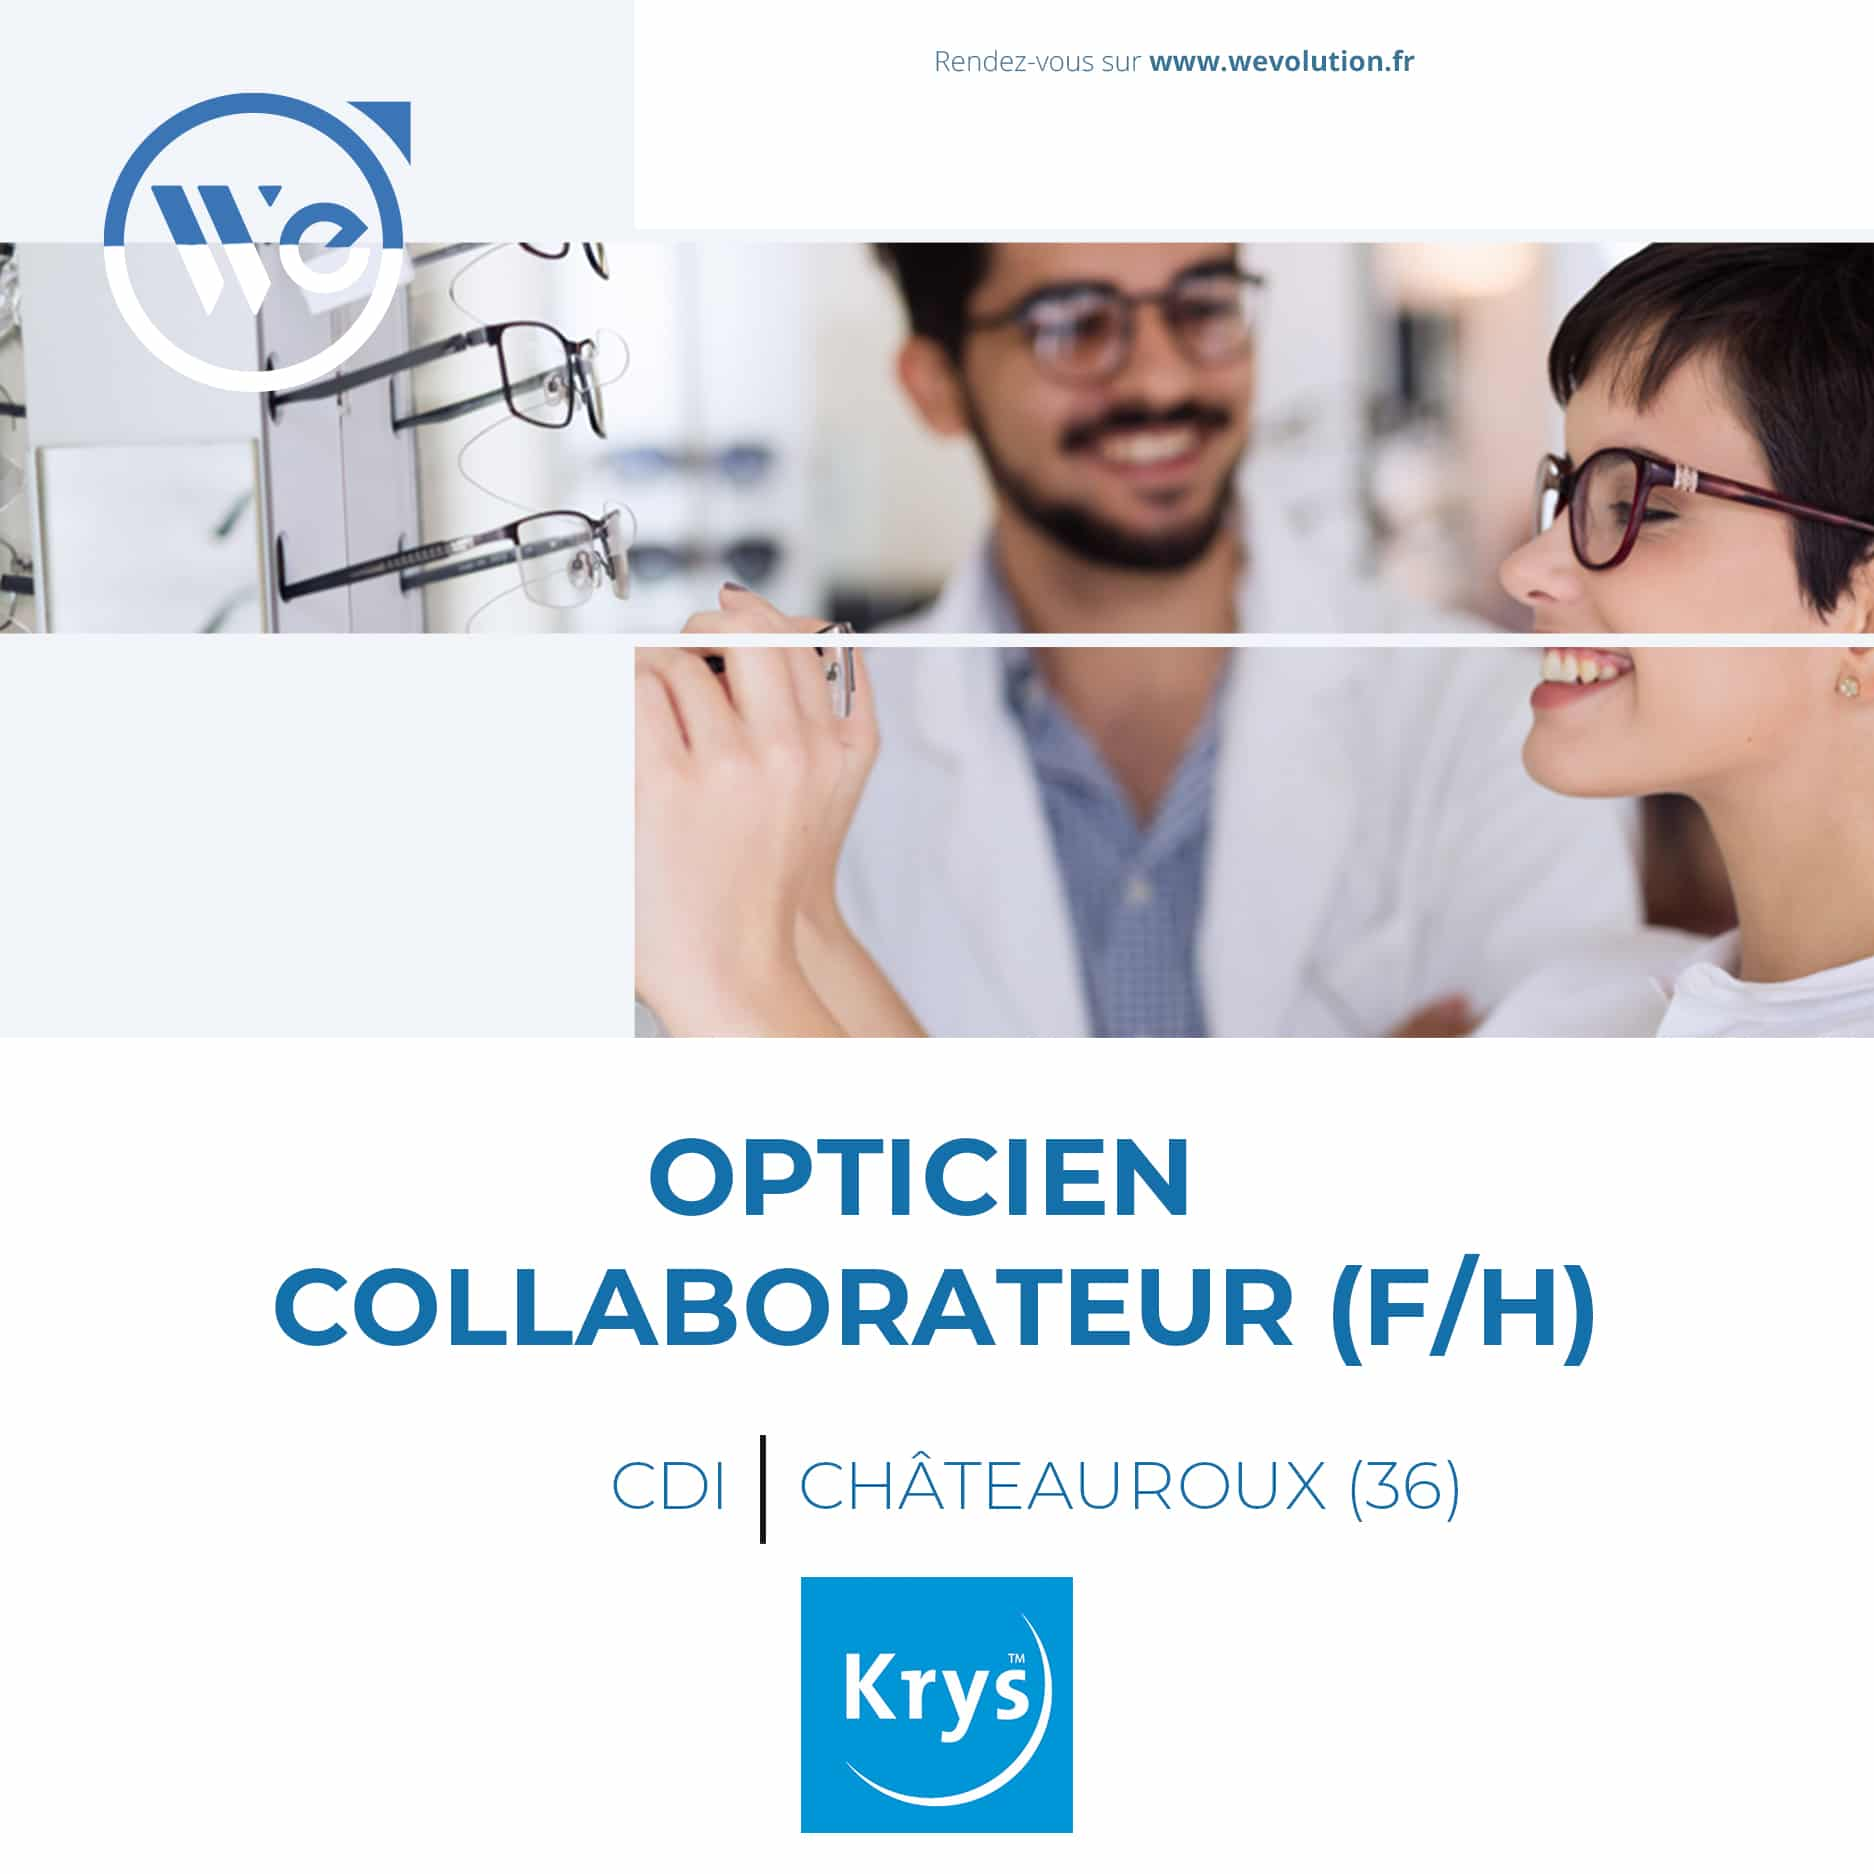 OPTICIEN COLLABORATEUR – KRYS